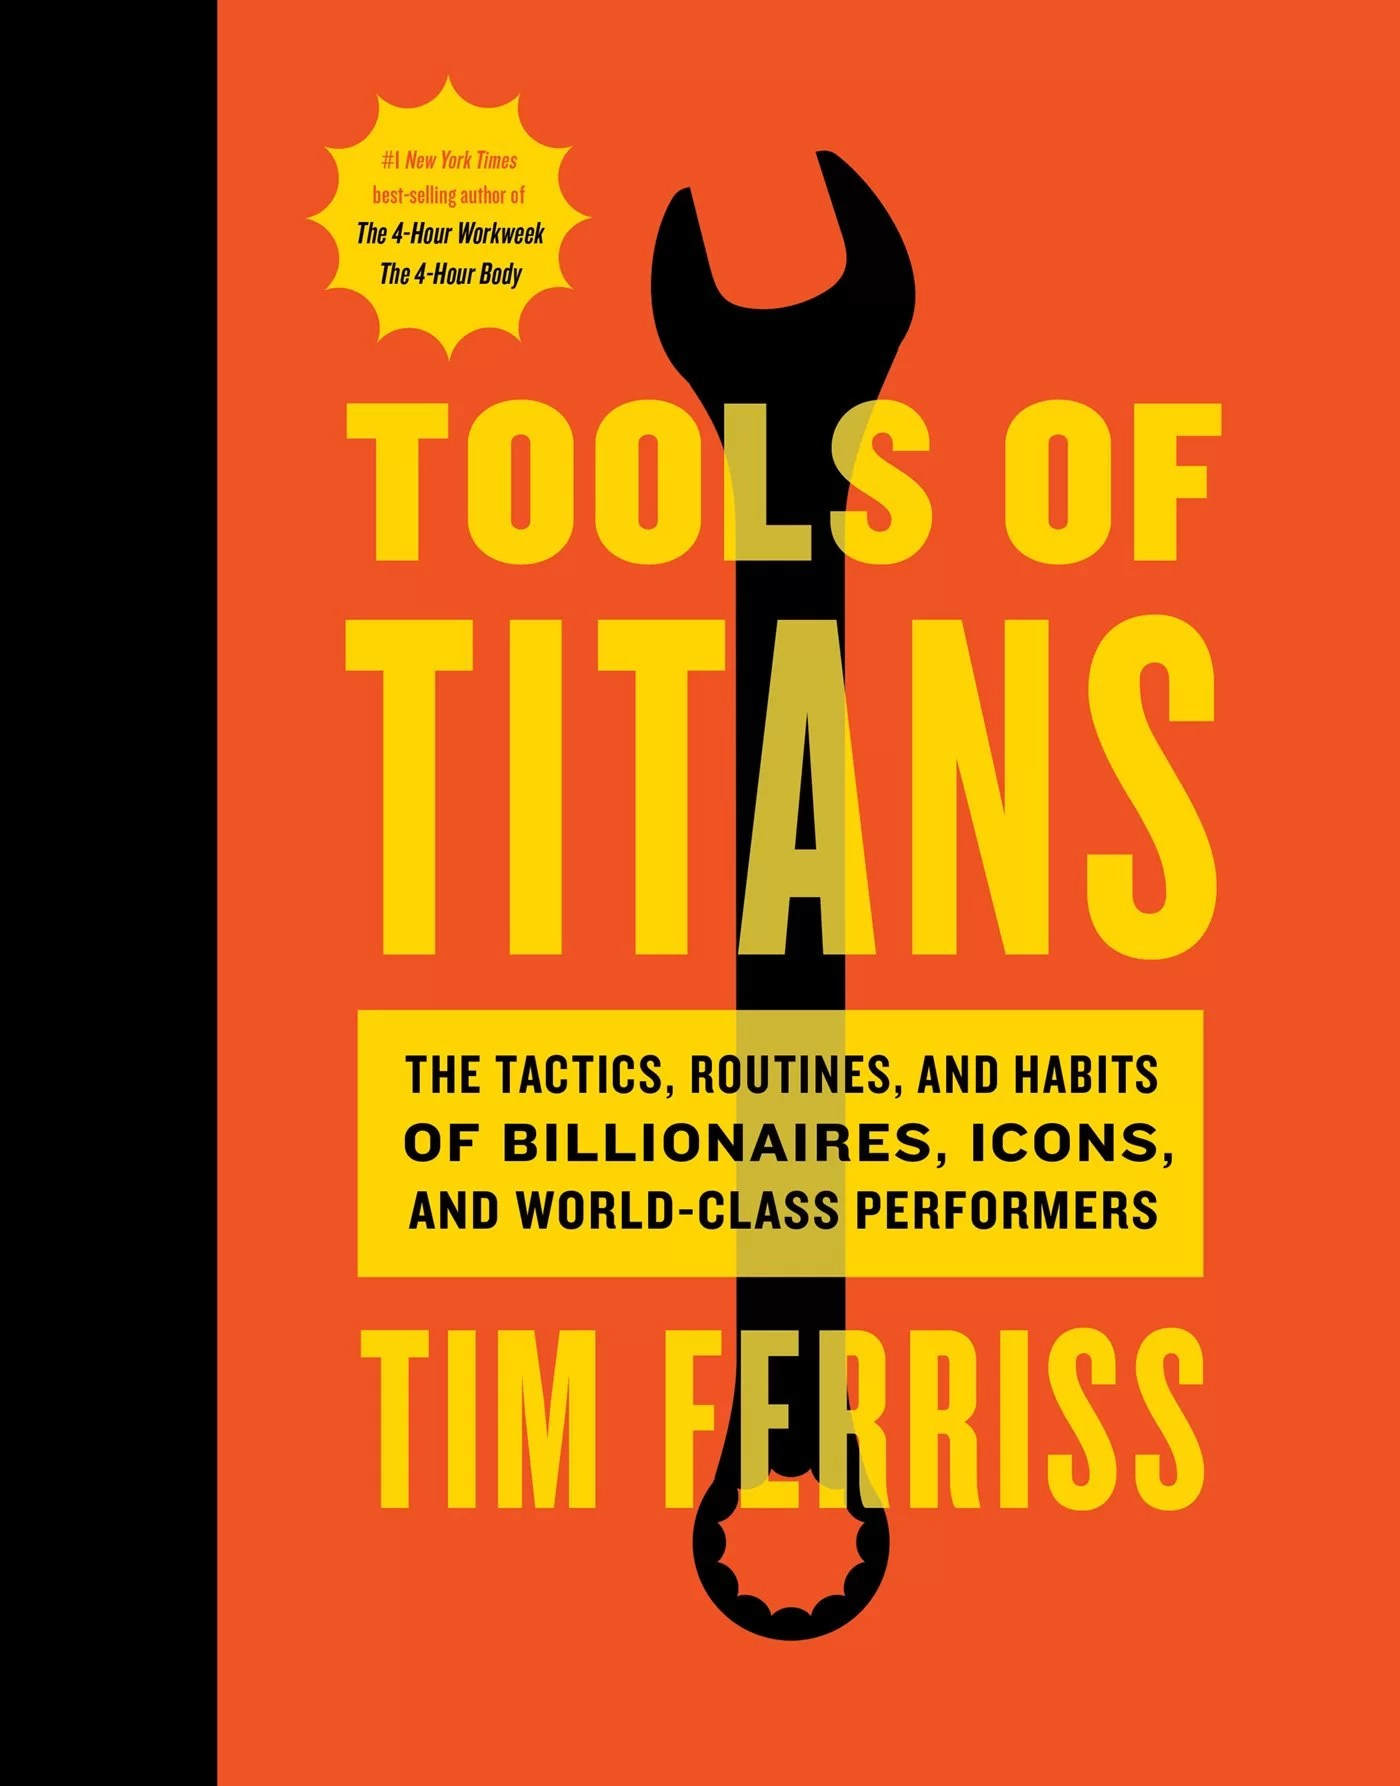 Tools of Titans by Tim Ferriss - Notes